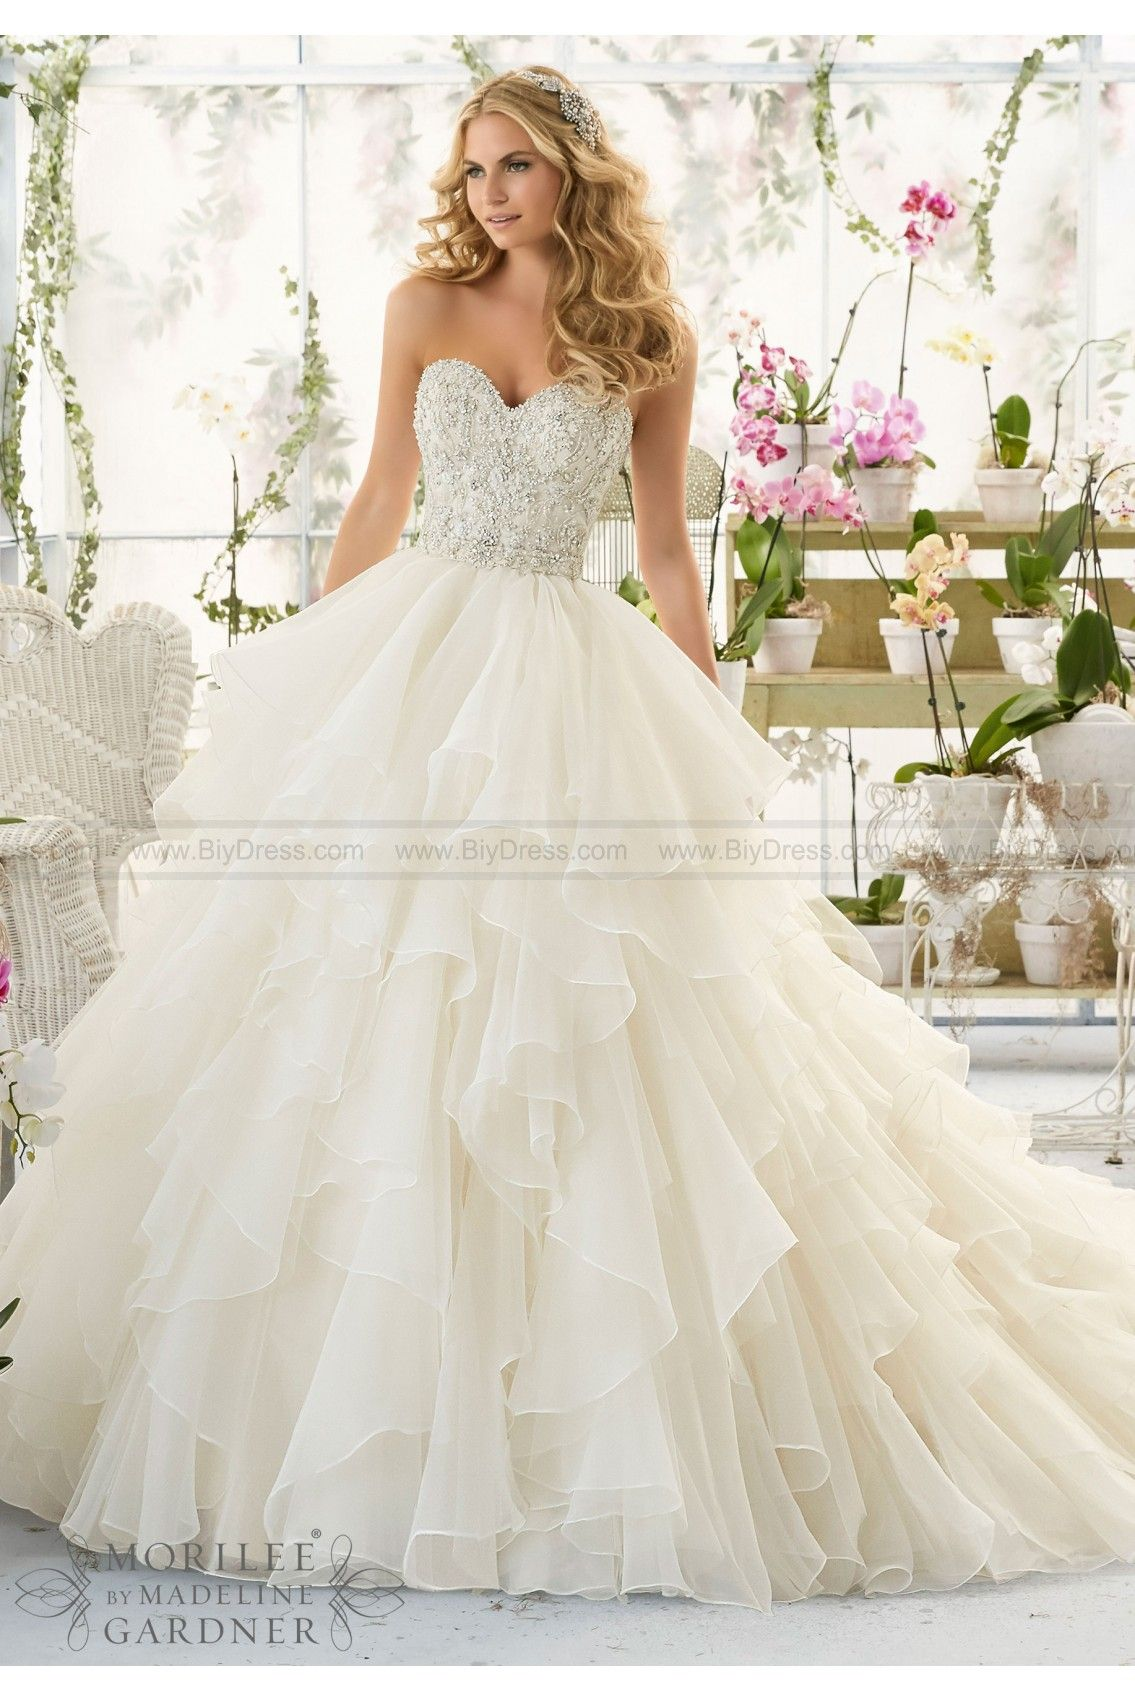 View Dress Mori Lee Bridal Spring 2016 Collection 2815 Intricate Crystal Beaded And Embroidered Bodice Onto A Flounced Organza Skirt